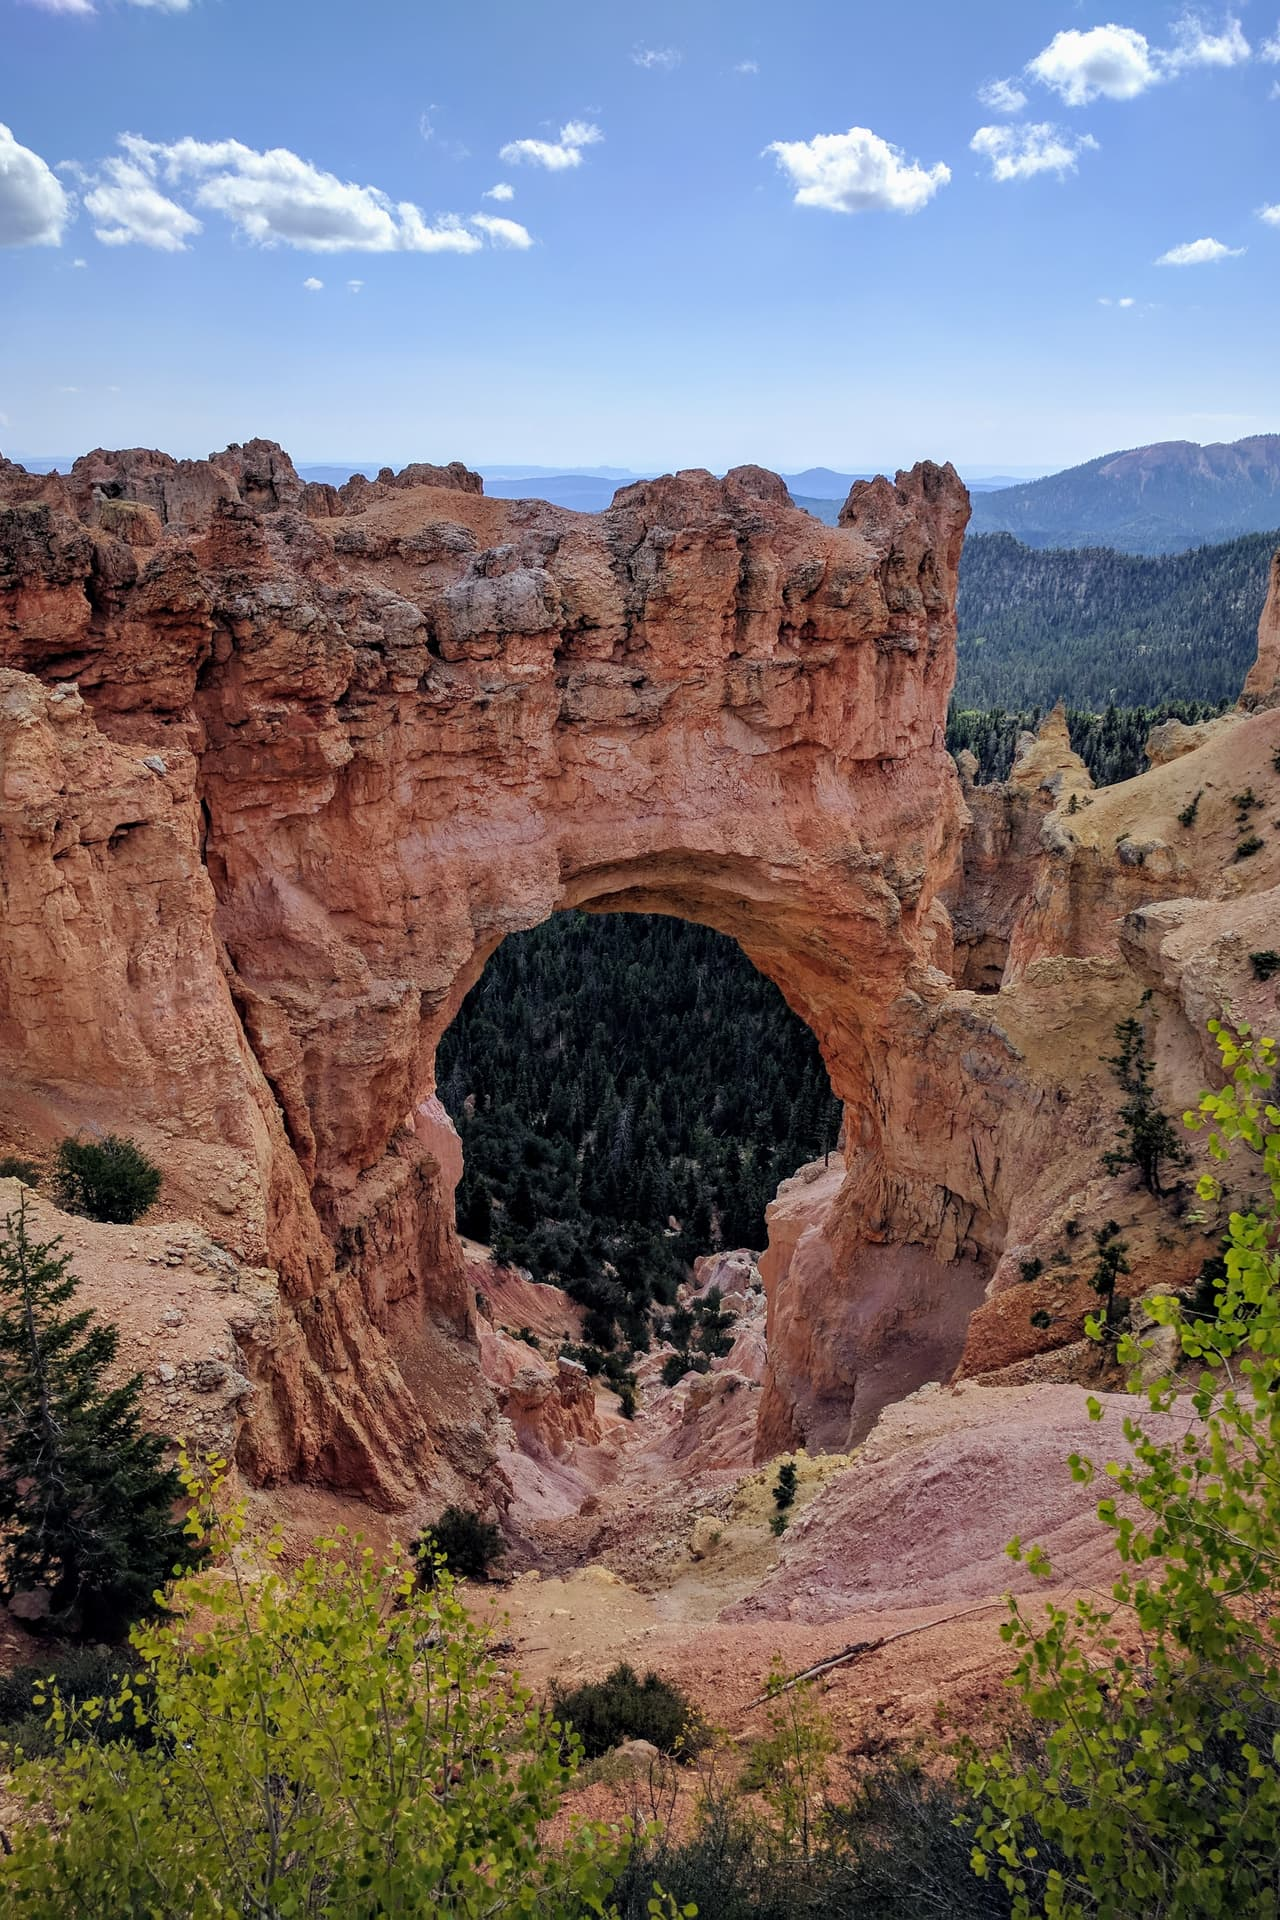 An arch in a fin of rock extending from the South Wall of Bryce Canyon. Pine trees are beginning to grow in the steep gulch descending through the arch.